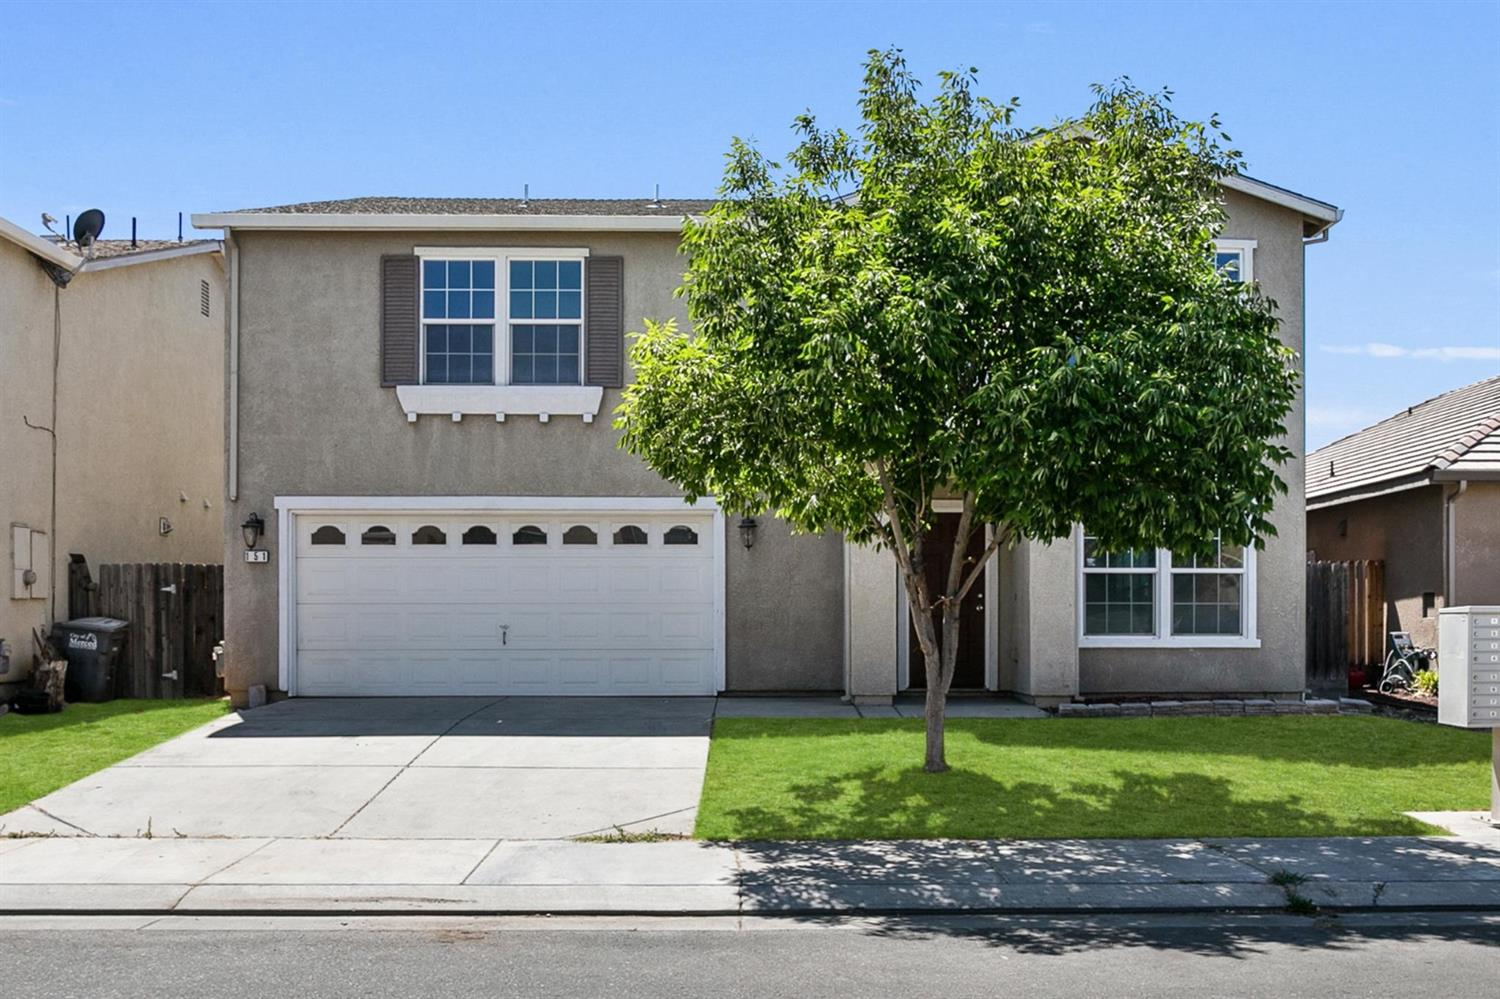 Beautiful move-in ready home. Spacious open floor plan with 3286 sq ft, 4 bedrooms, 2.5 baths plus a